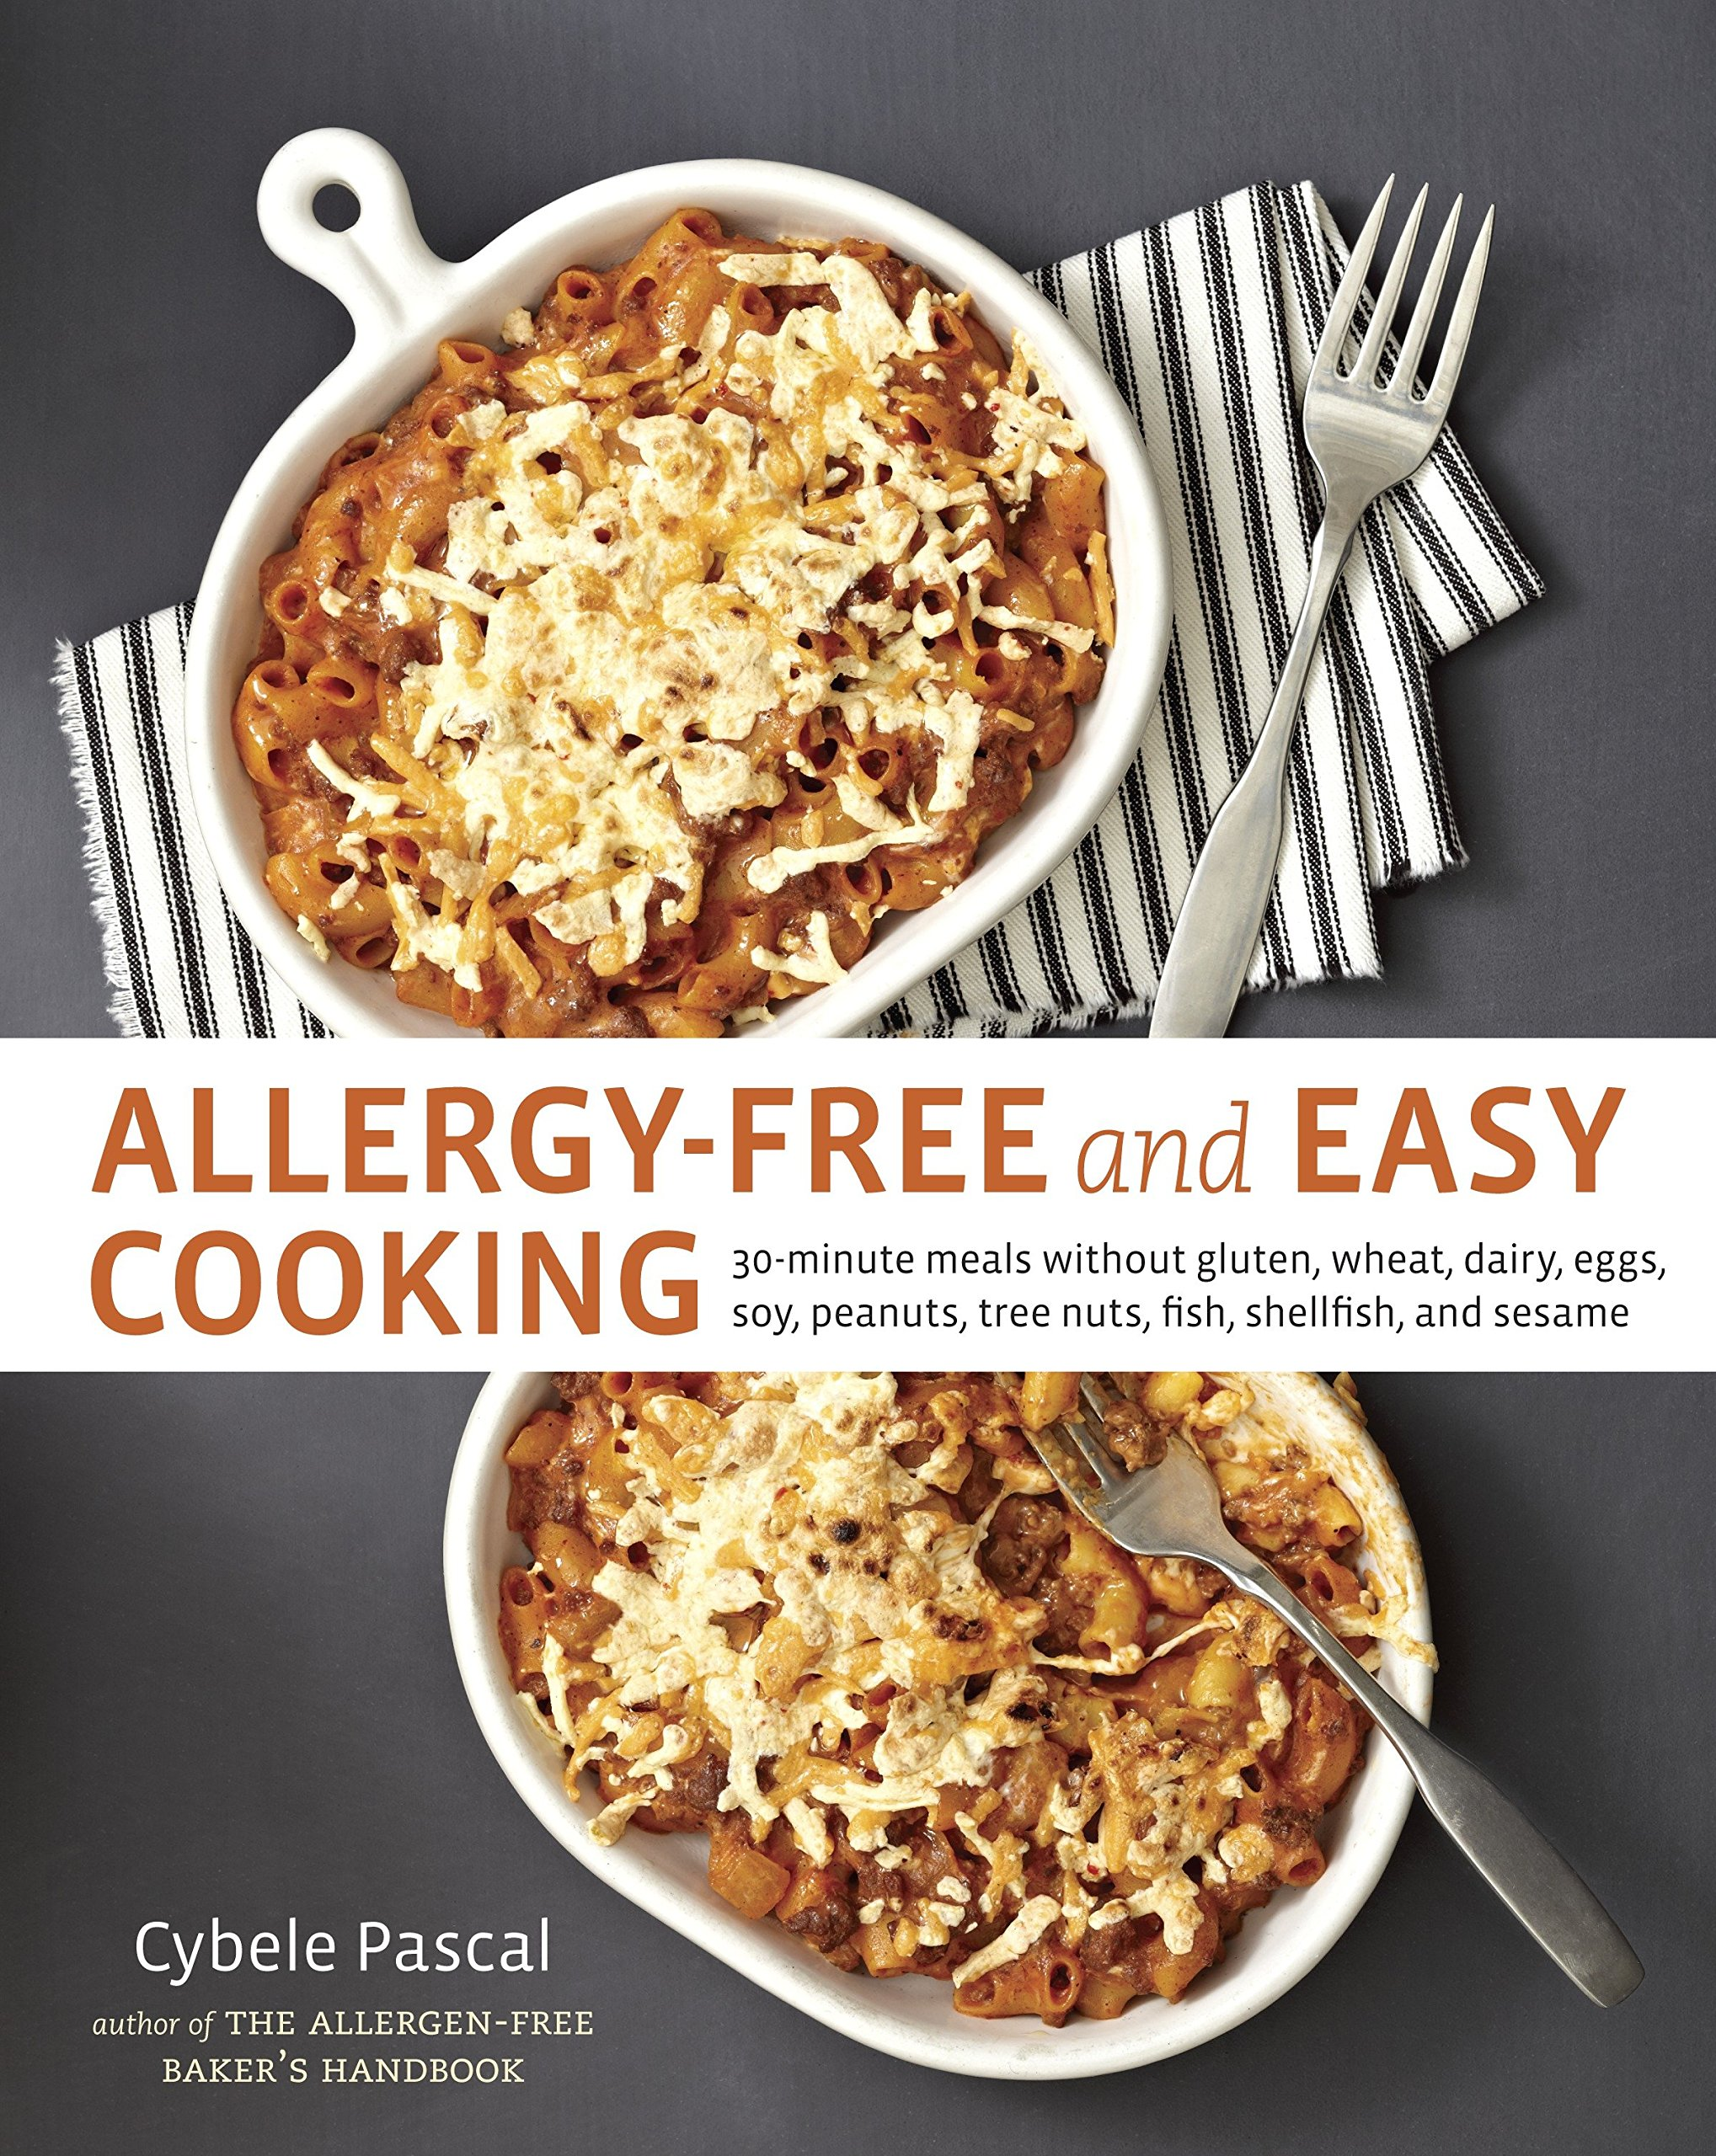 Allergy-Free and Easy Cooking: 30-Minute Meals without Gluten, Wheat, Dairy, Eggs, Soy, Peanuts, Tree Nuts, Fish, Shellfish, and Sesame [A Cookbook] by Ten Speed Press